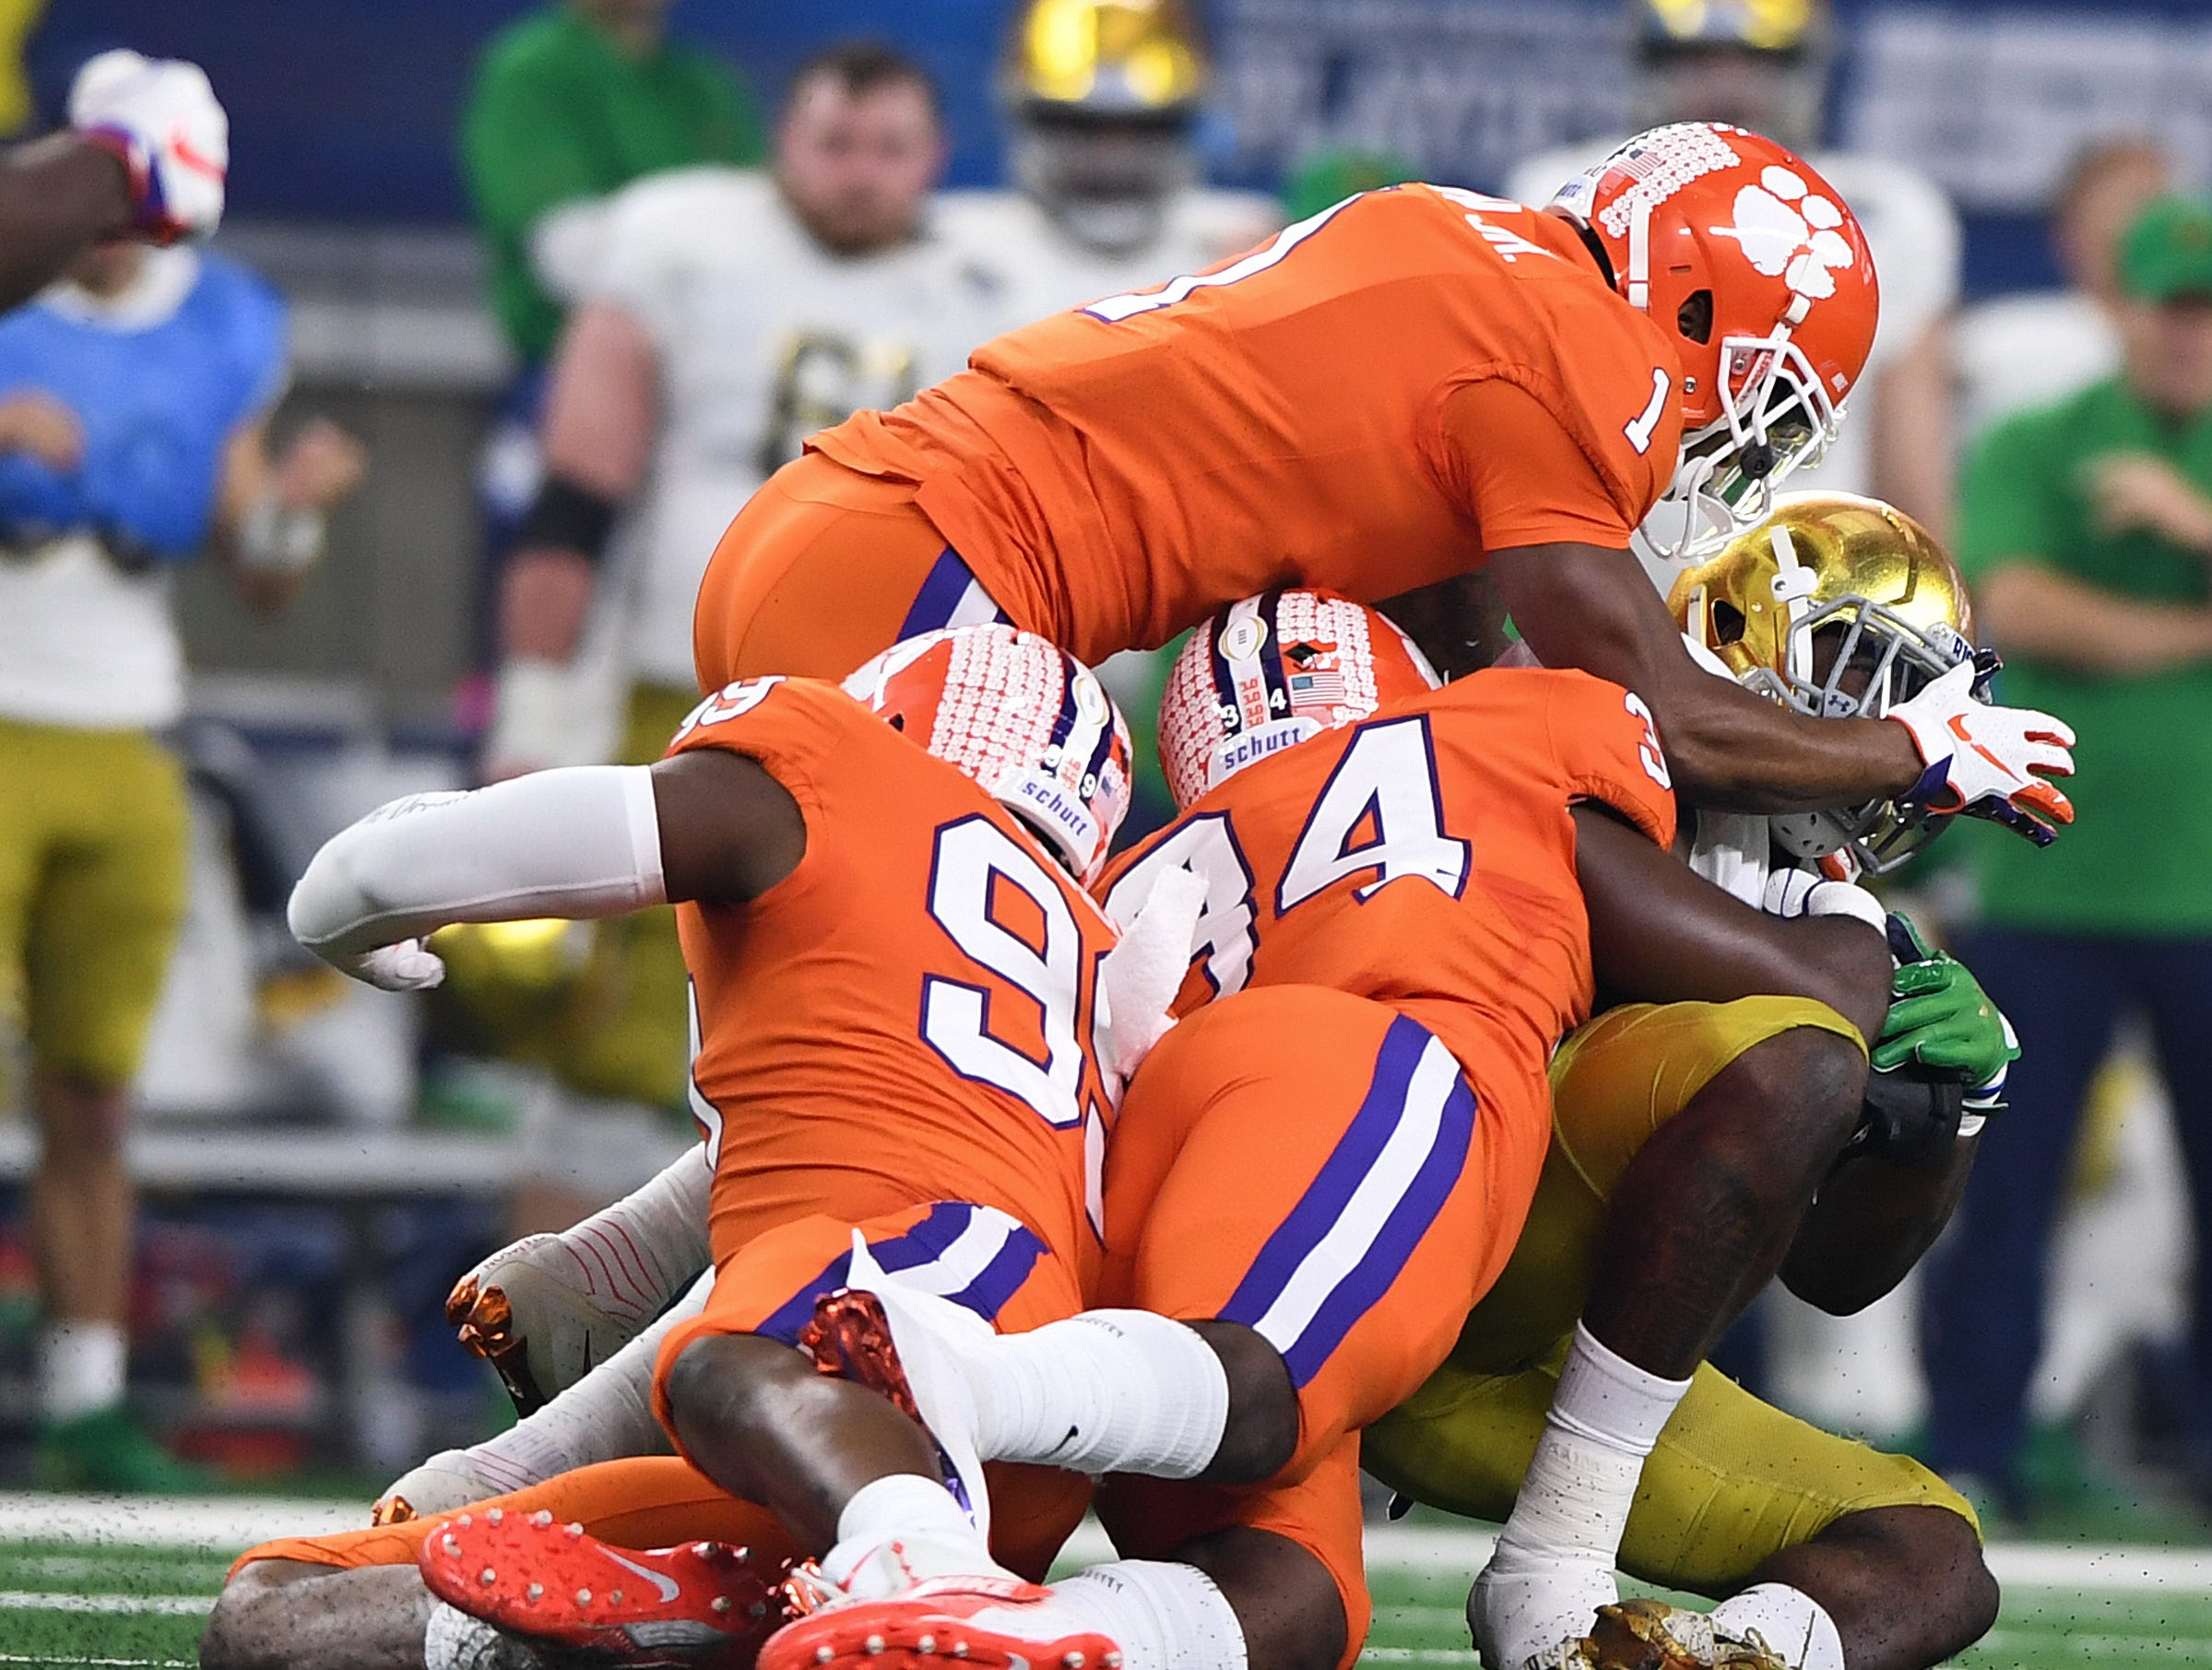 Clemson linebacker Kendall Joseph (34) and cornerback Trayvon Mullen (1) bring down Notre Dame running back Dexter Williams (2) during the 1st quarter of the Goodyear Cotton Bowl at AT&T stadium in Arlington, TX Saturday, December 29, 2018.